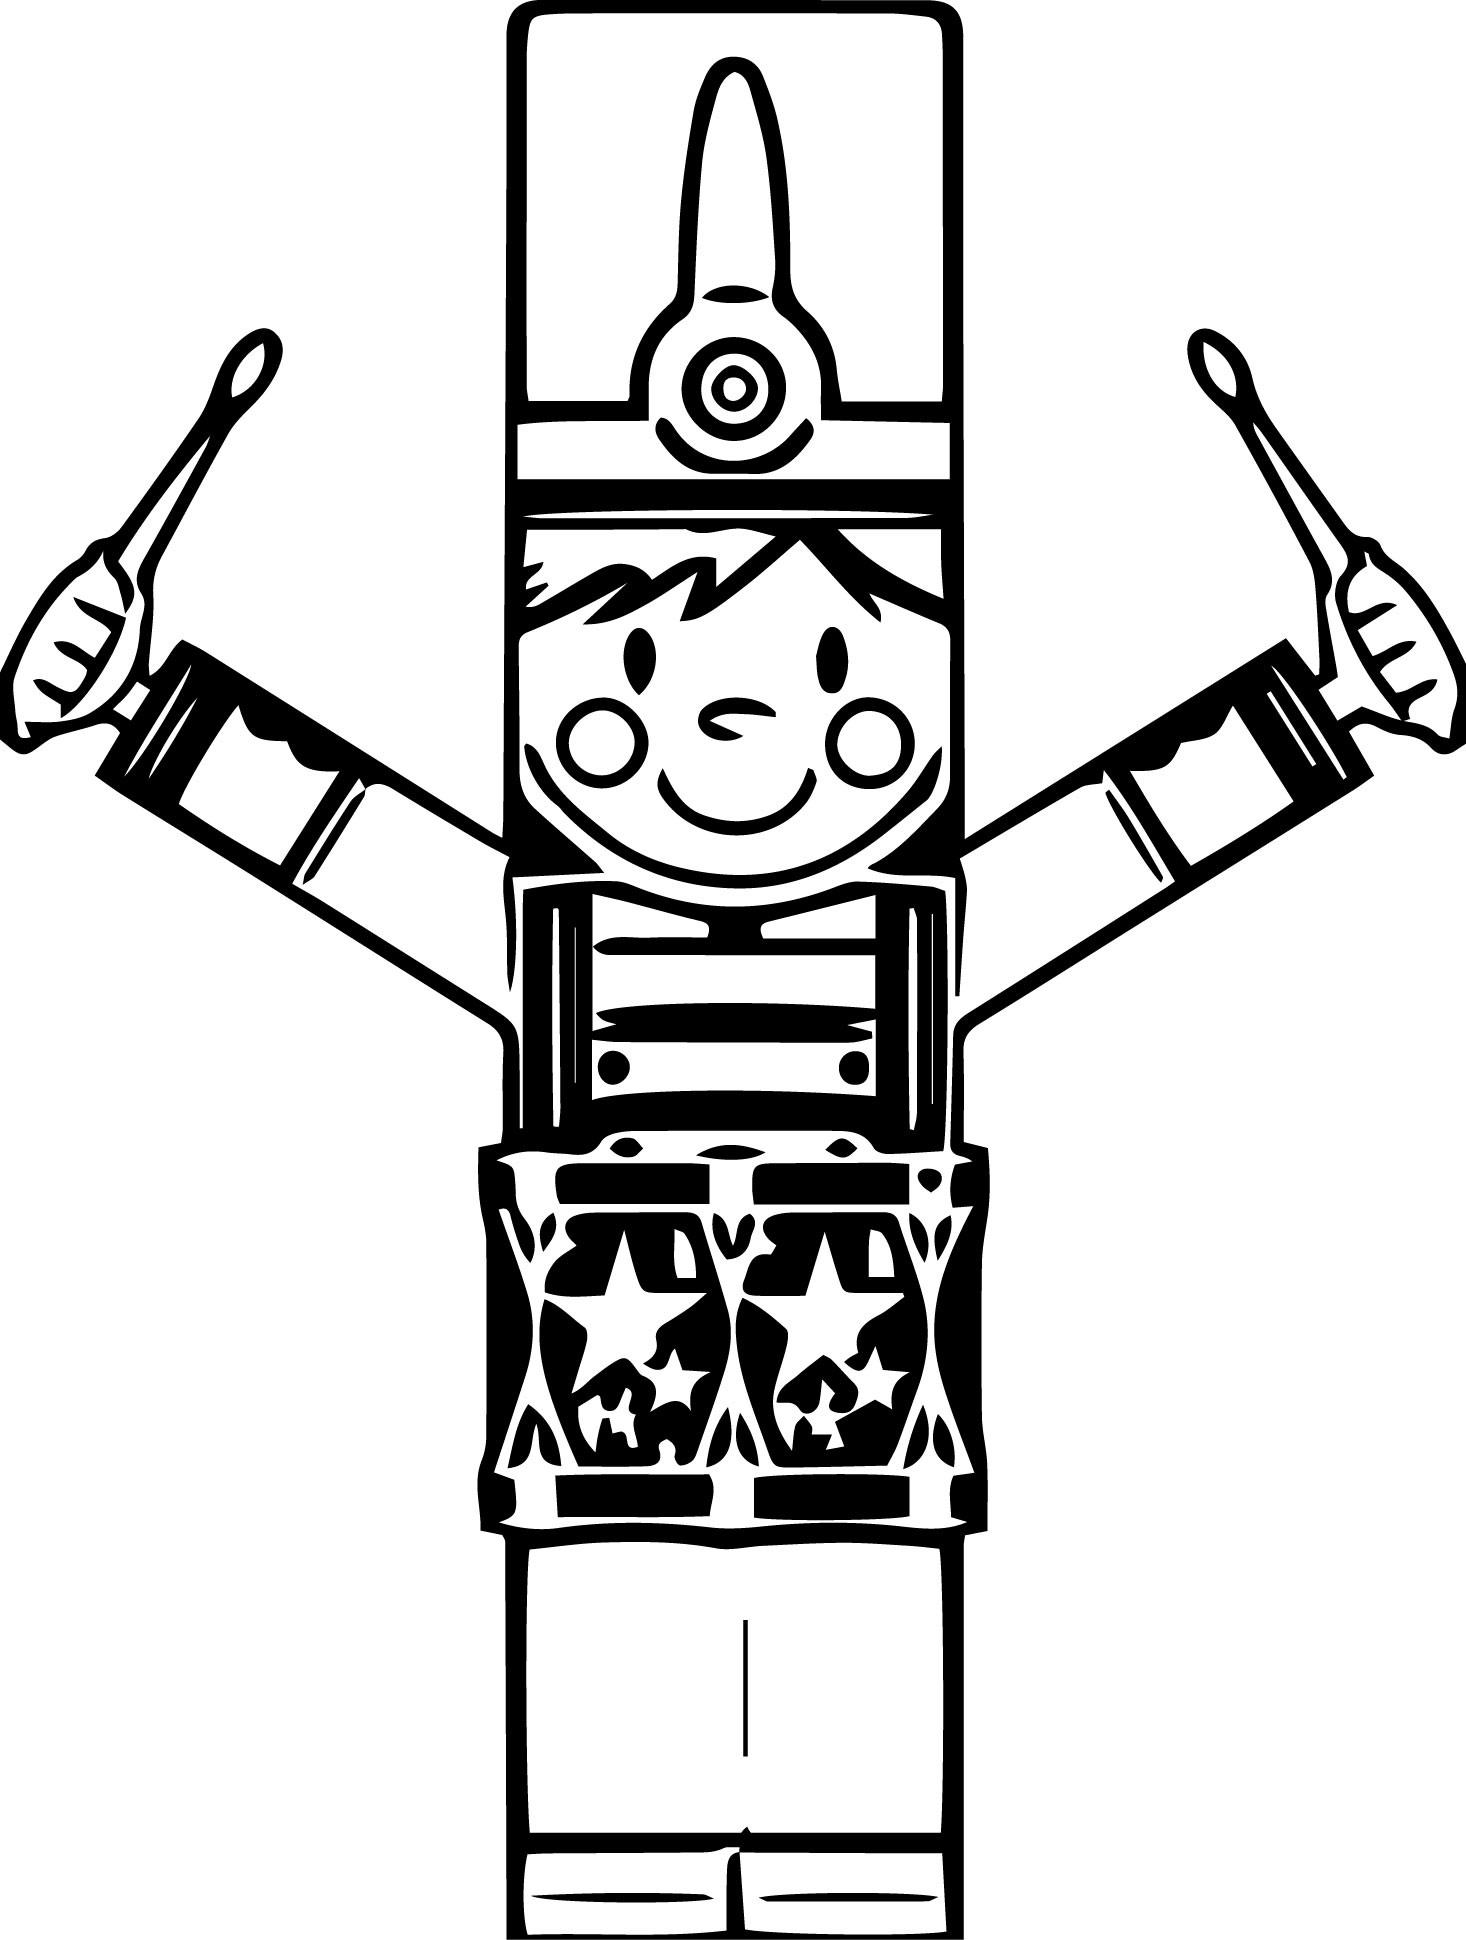 Clip Art The Nutcracker Coloring Pages nutcracker coloring pages wecoloringpage pages